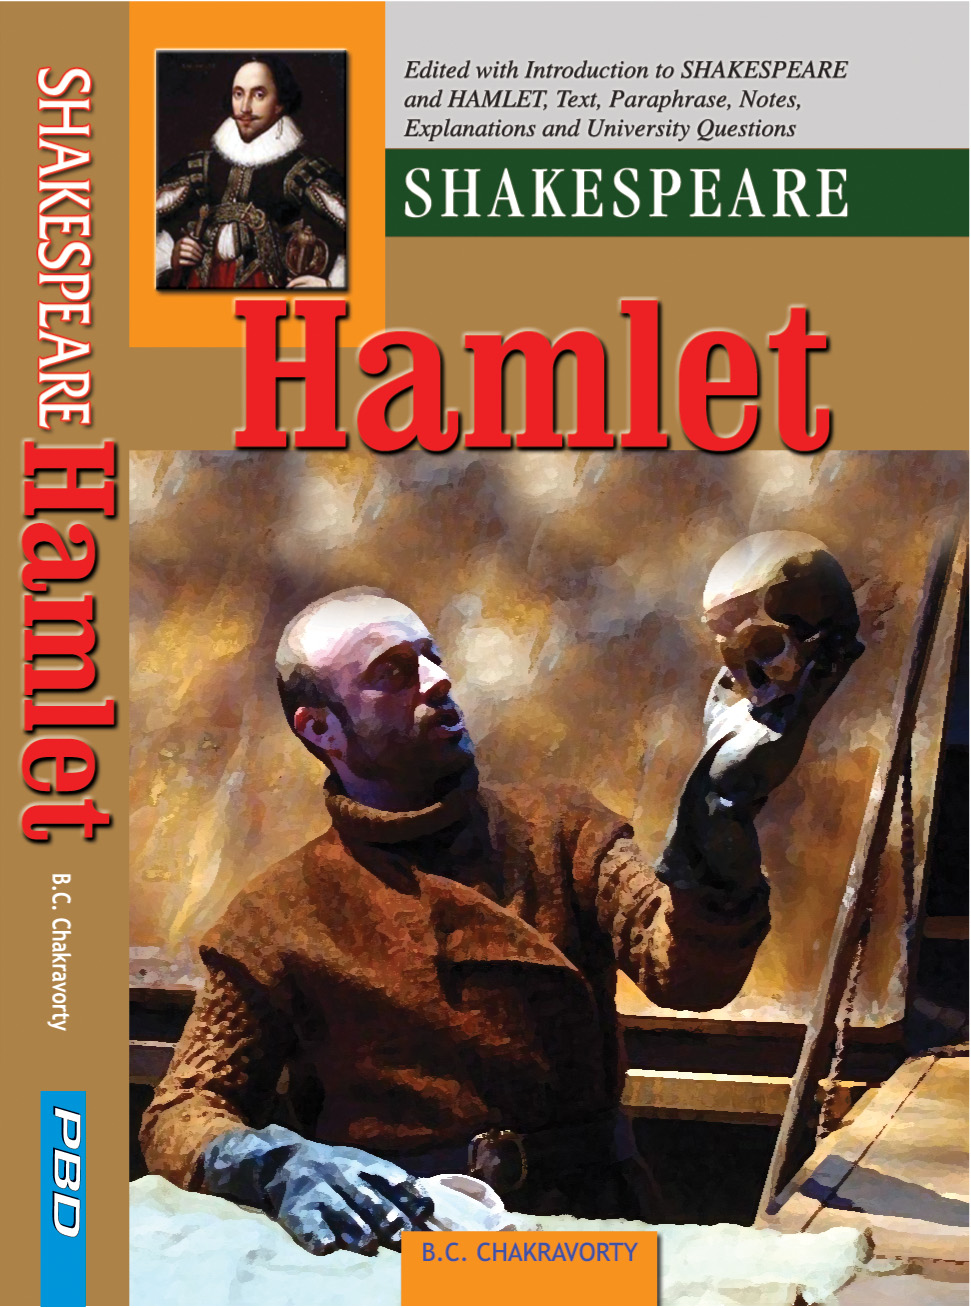 an analysis of the characters feelings in hamlet a play by william shakespeare Characters of shakespear's plays is an 1817 book of criticism of shakespeare's plays, written by early nineteenth century english essayist and literary critic william hazlitt.